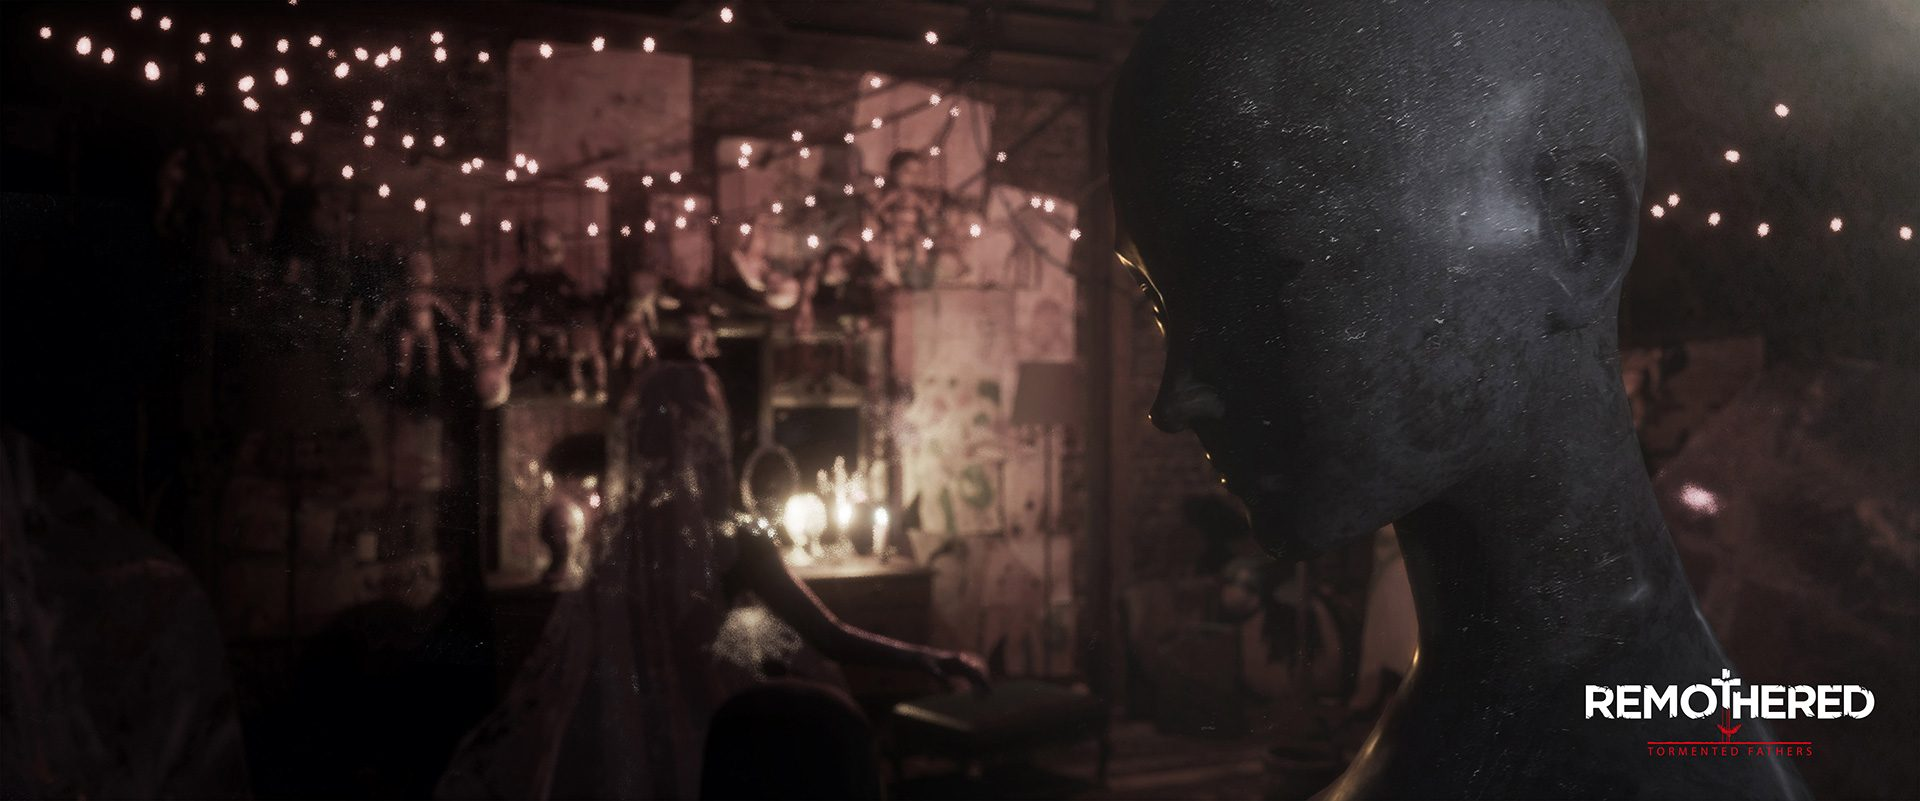 Remothered-Tormented-Fathers-13.jpg